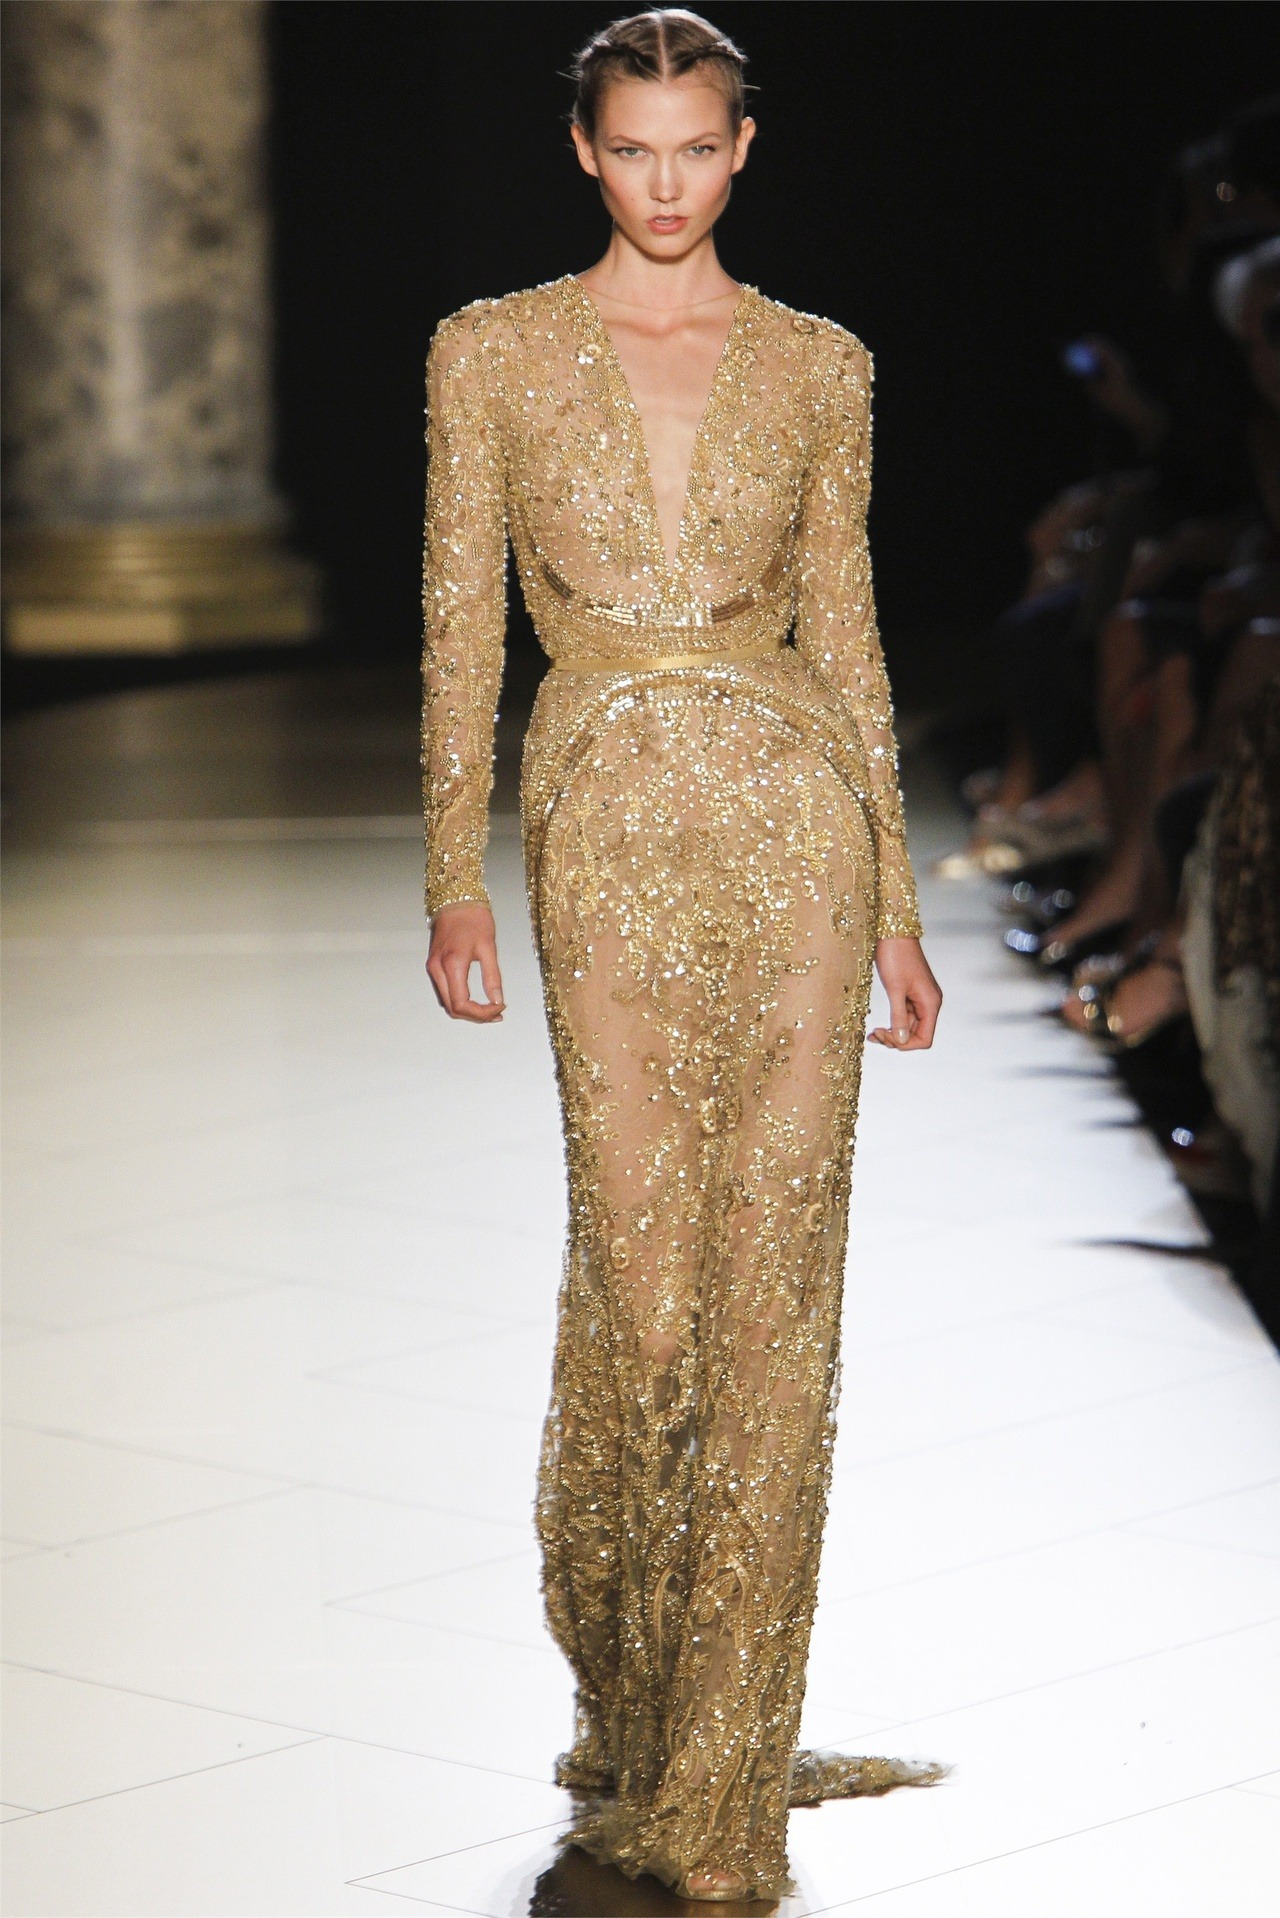 Elie Saab Haute Couture Fall/Winter 2012 Paris Fashion Week